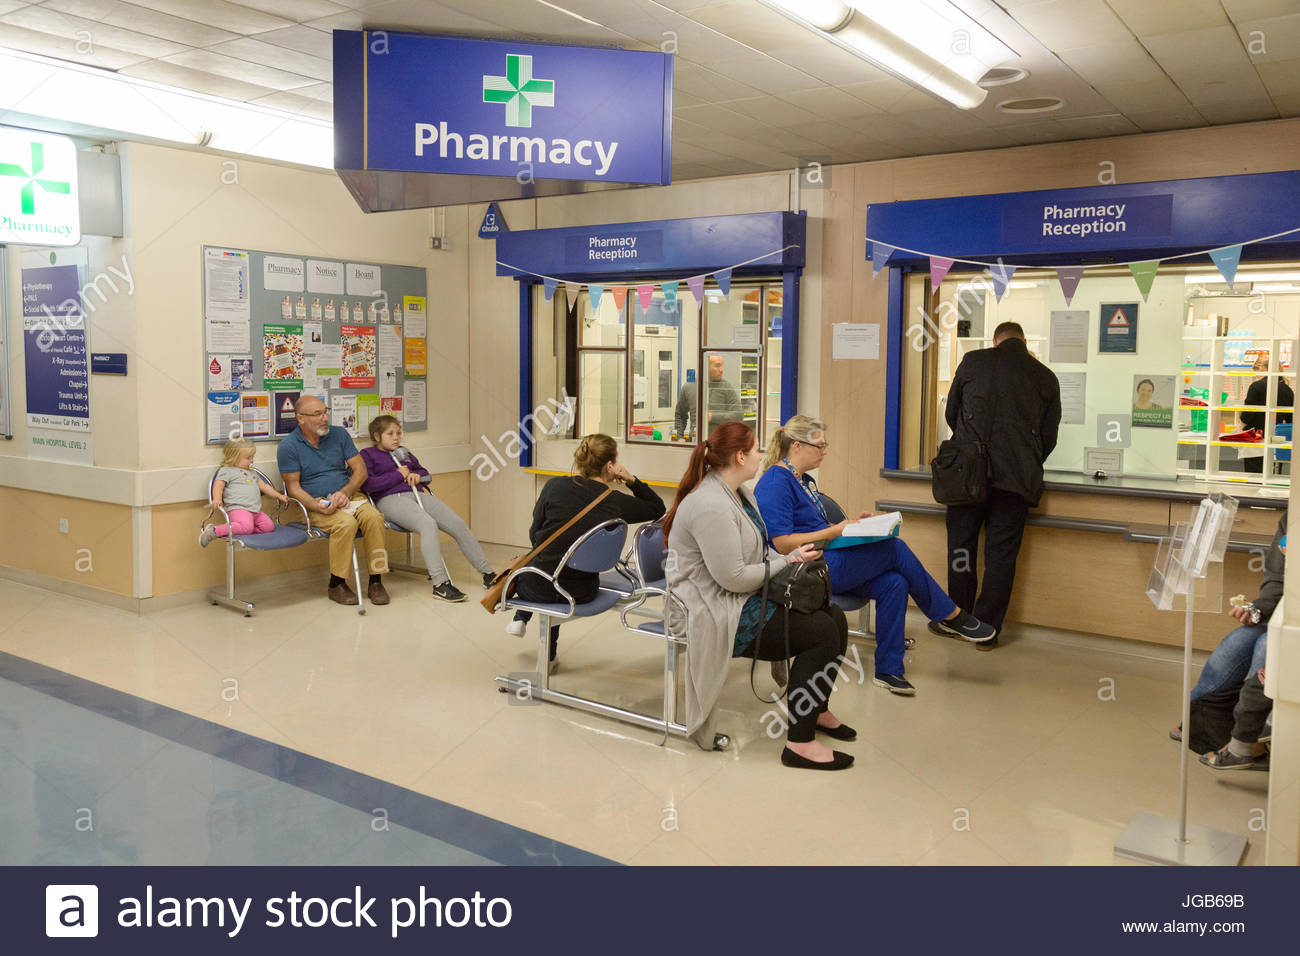 Hospital Pharmacy - patients waiting to collect medication, the Hospital Pharmacy, John Radcliffe Hospital, Oxford - Stock Image